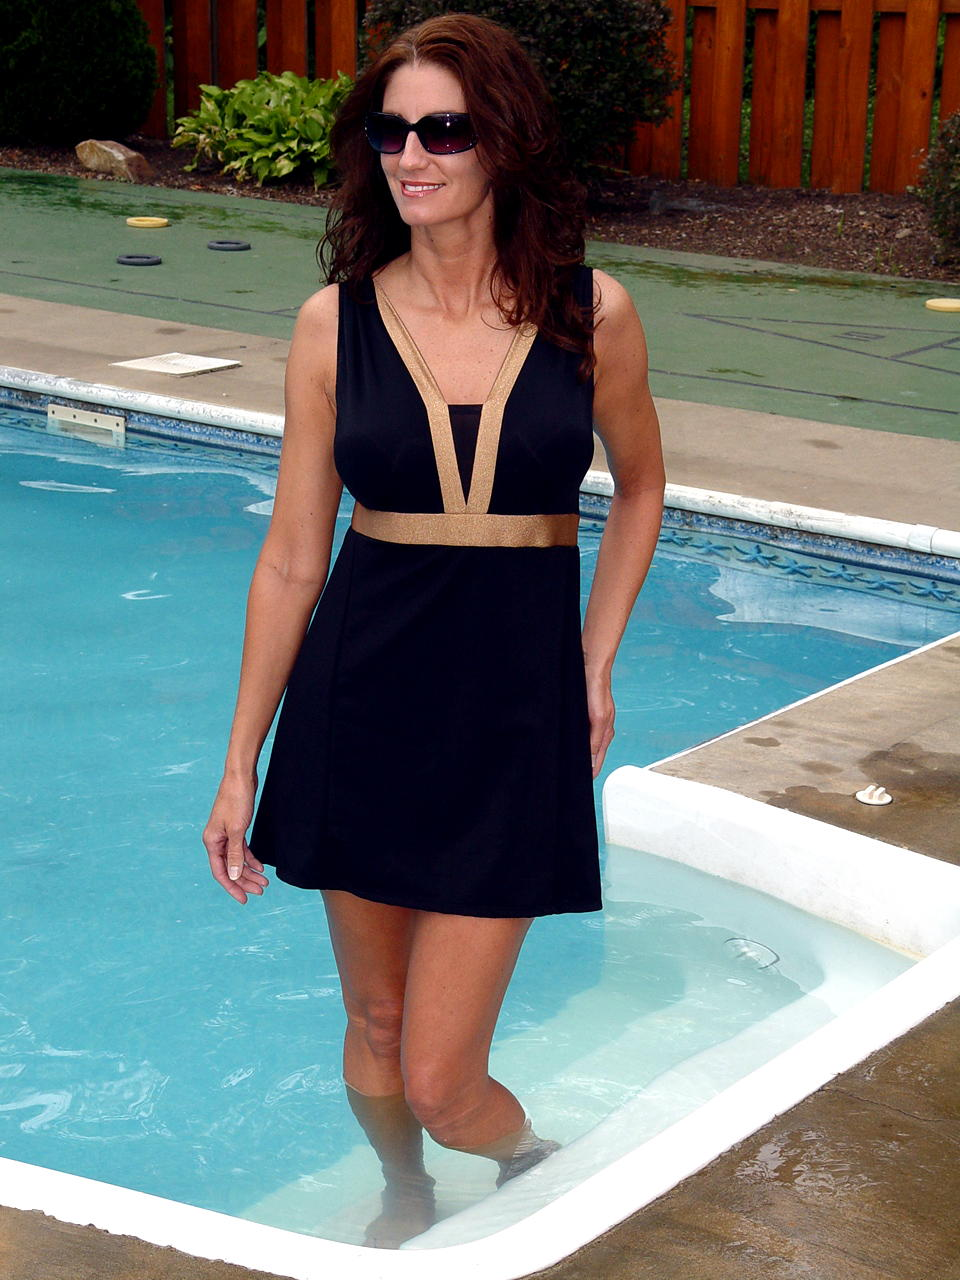 Slimming Swimsuits! SlimPerfect Review & Giveaway